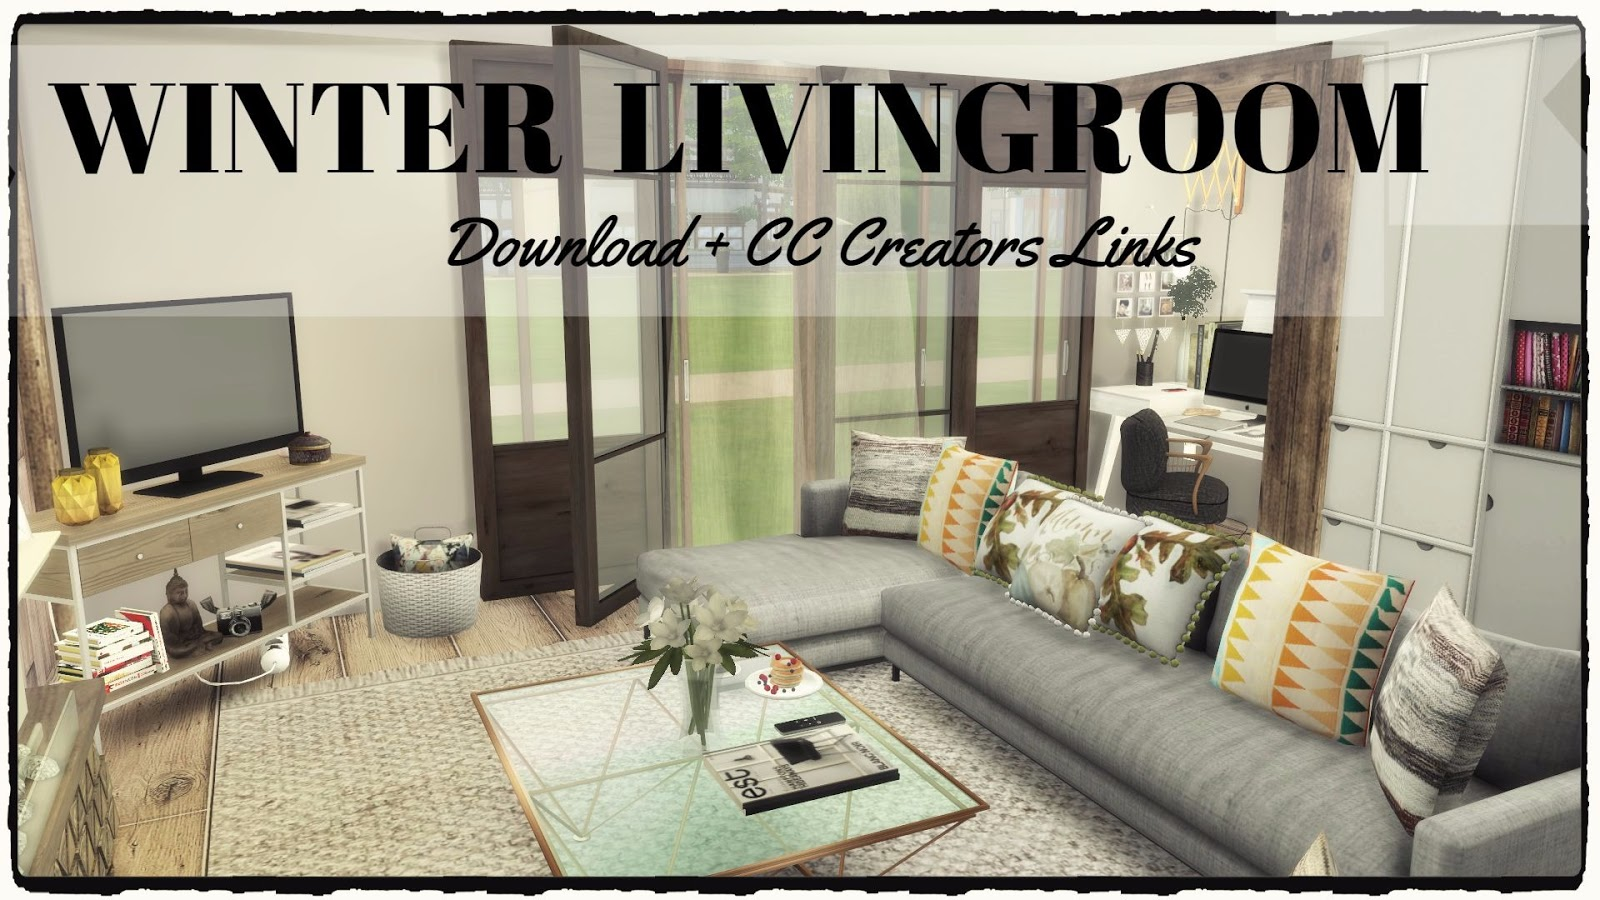 Furniture Design Ideas Sims 4 Winter Livingroom Download Cc Creators Links